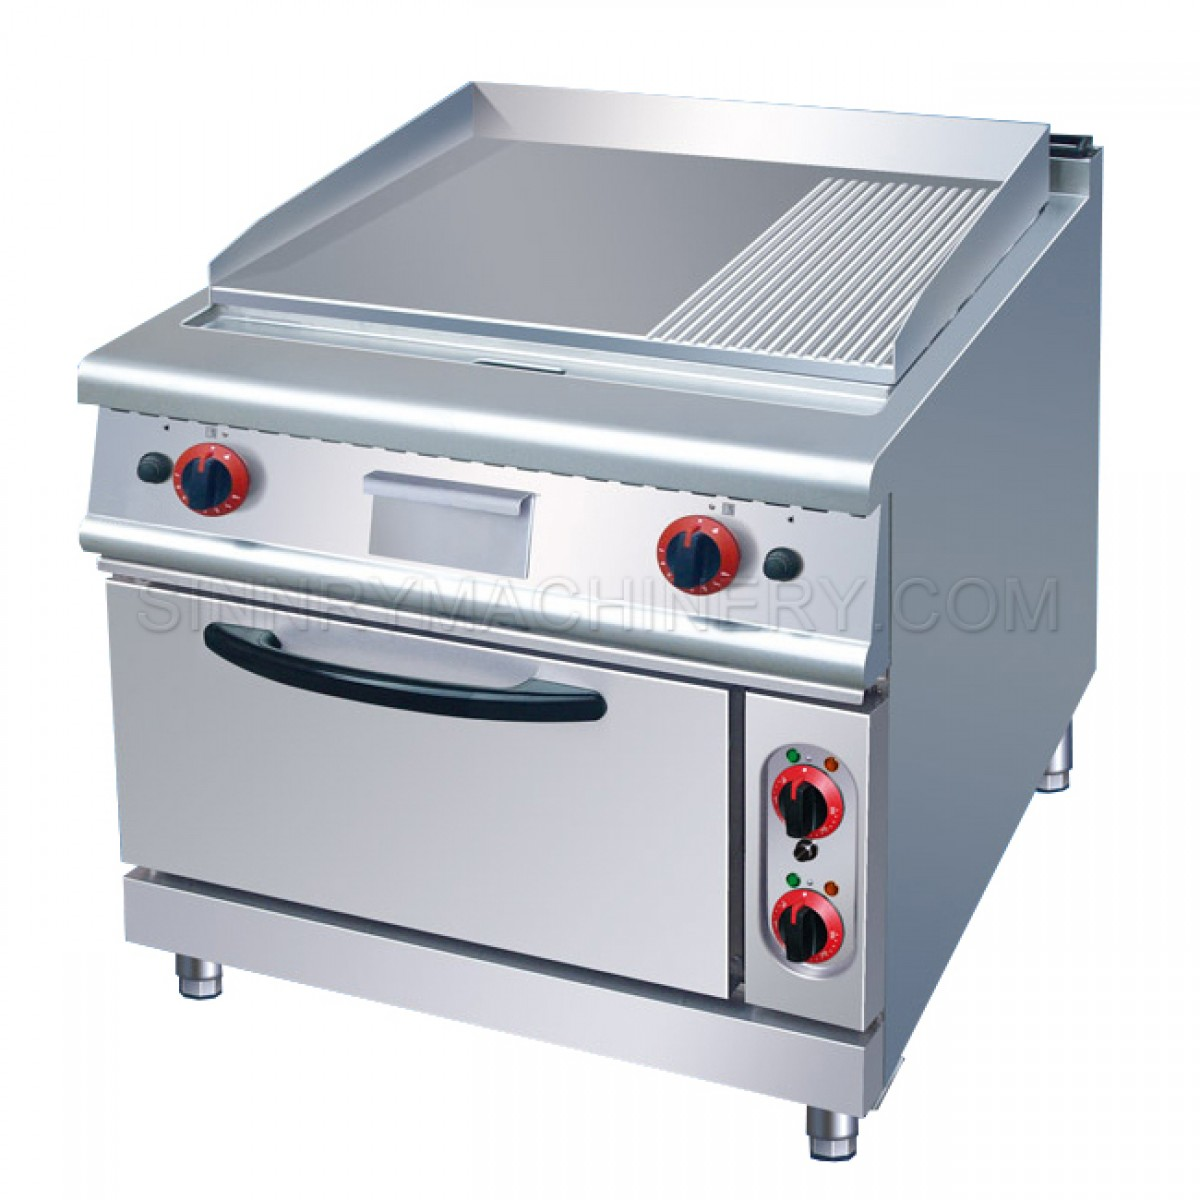 Griddle with Oven - Electric, 19.8 KW, SN-CRE104B